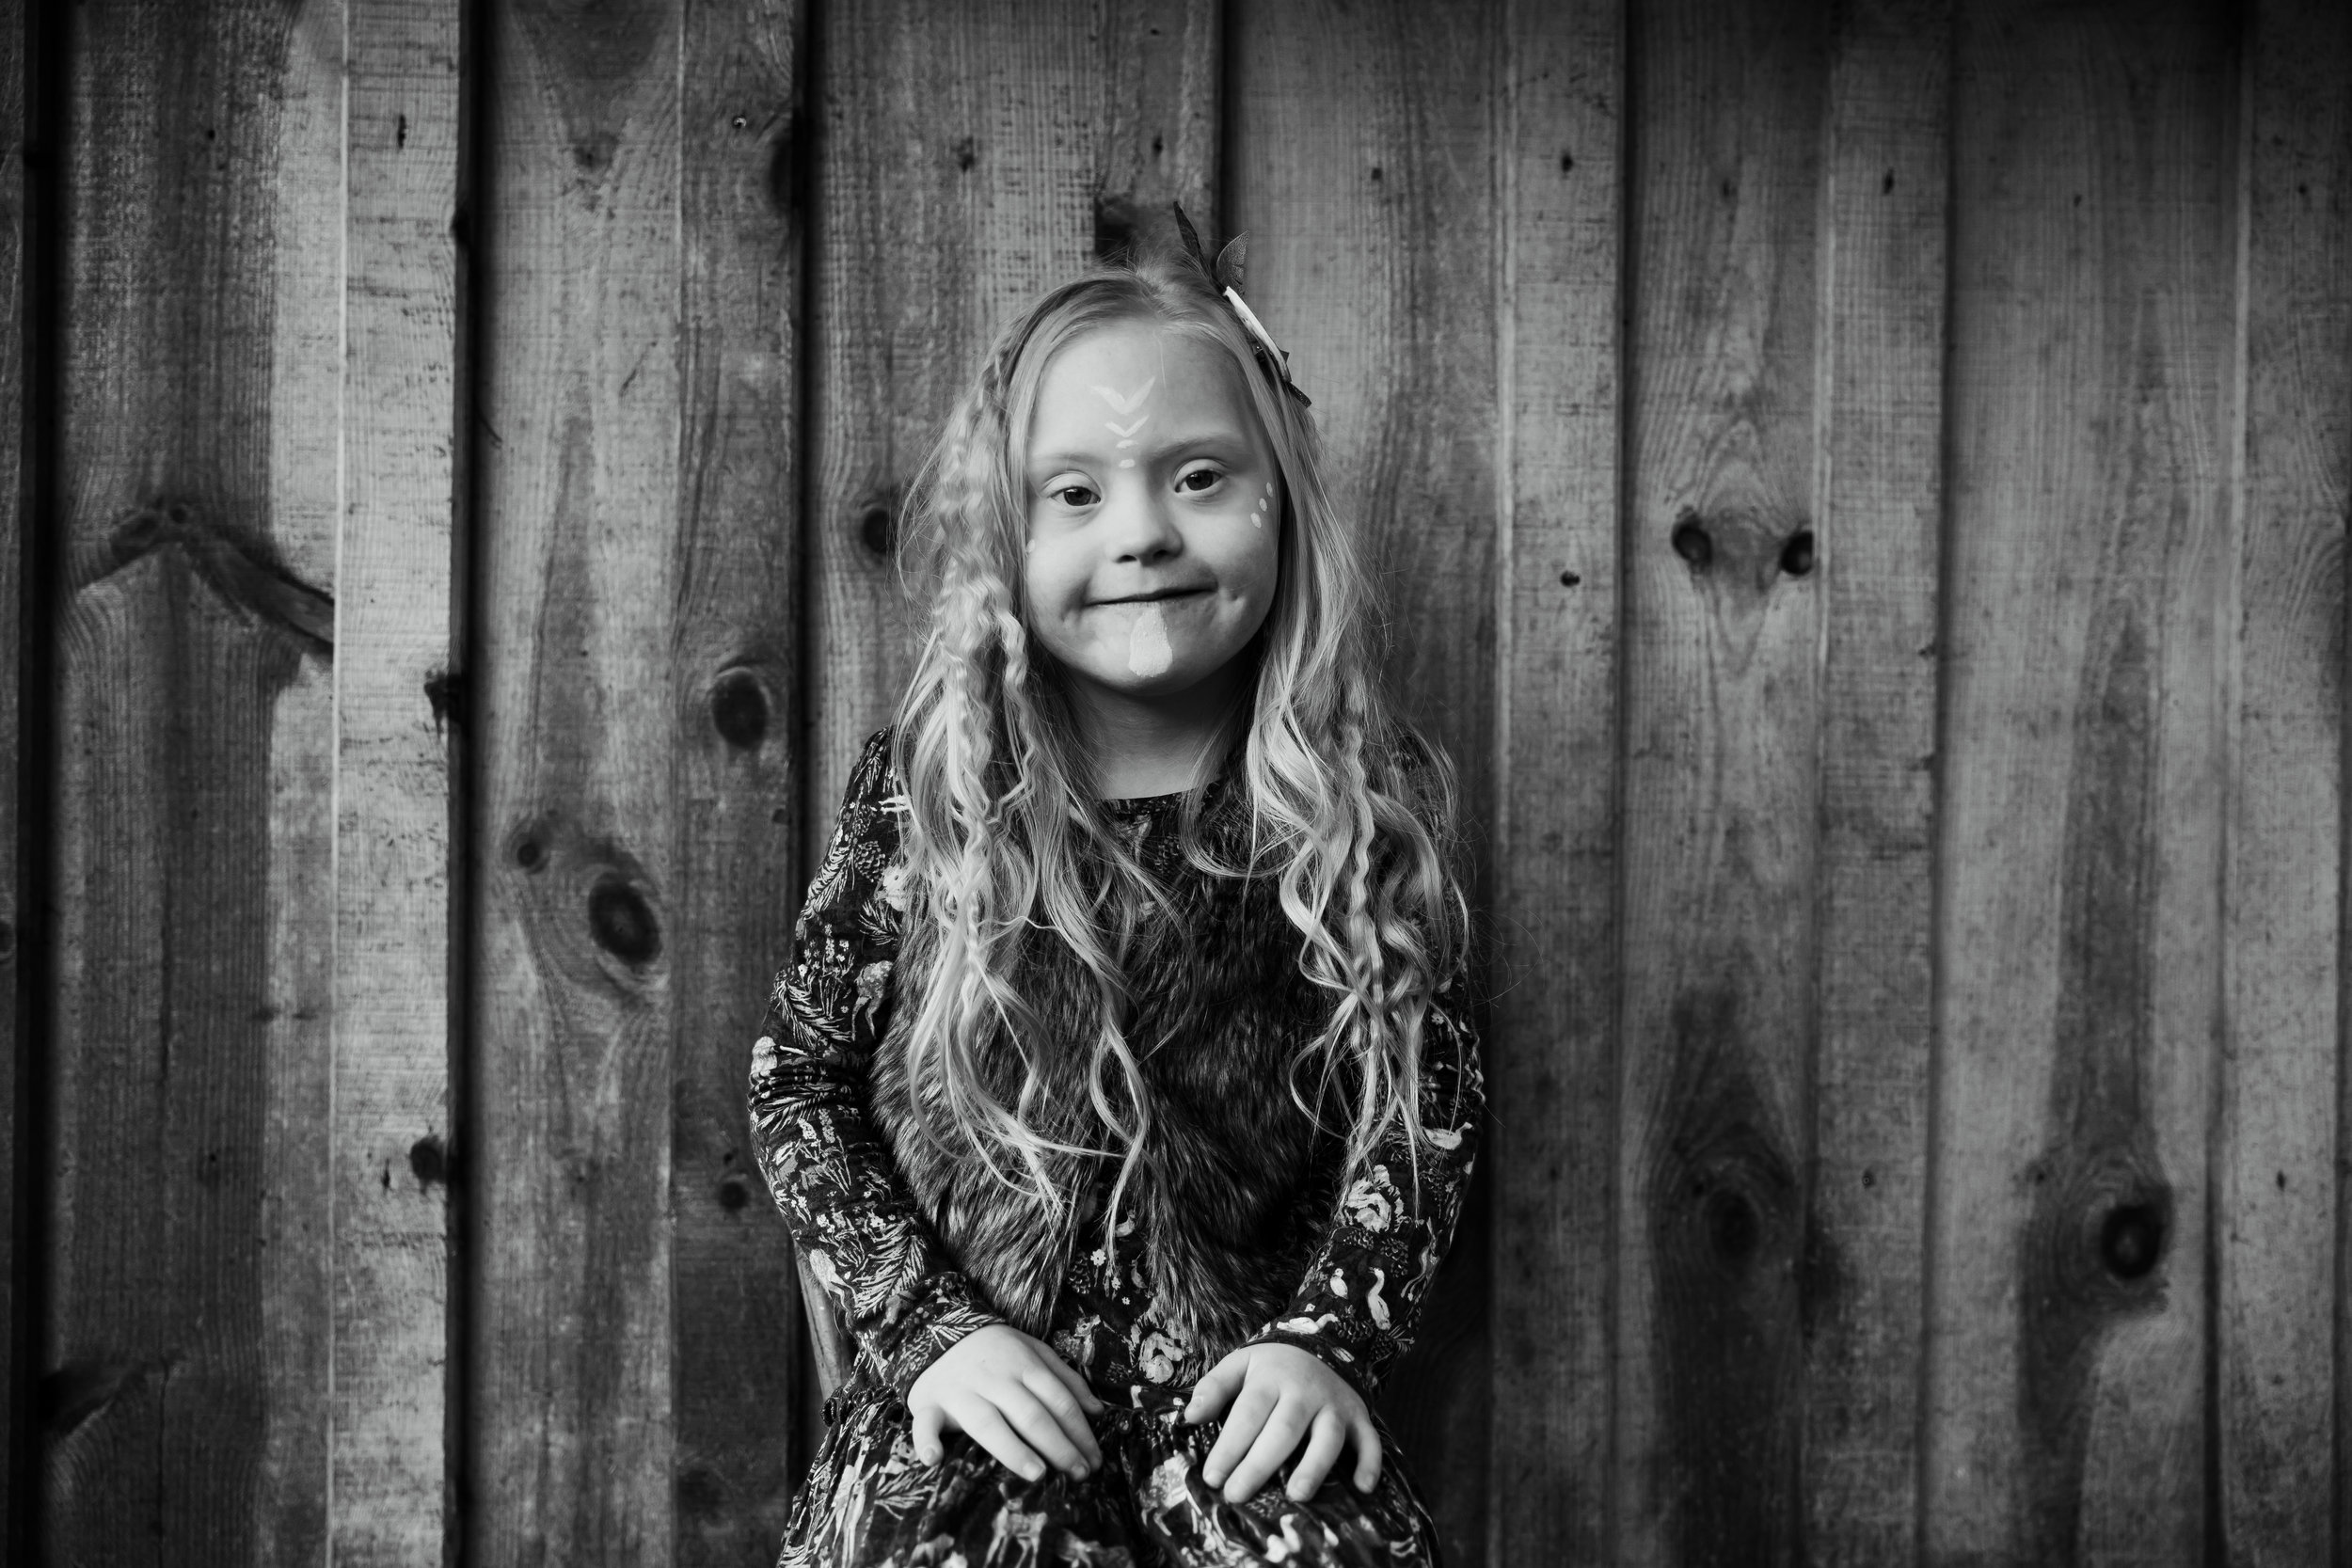 Little model Cora with downs syndrome